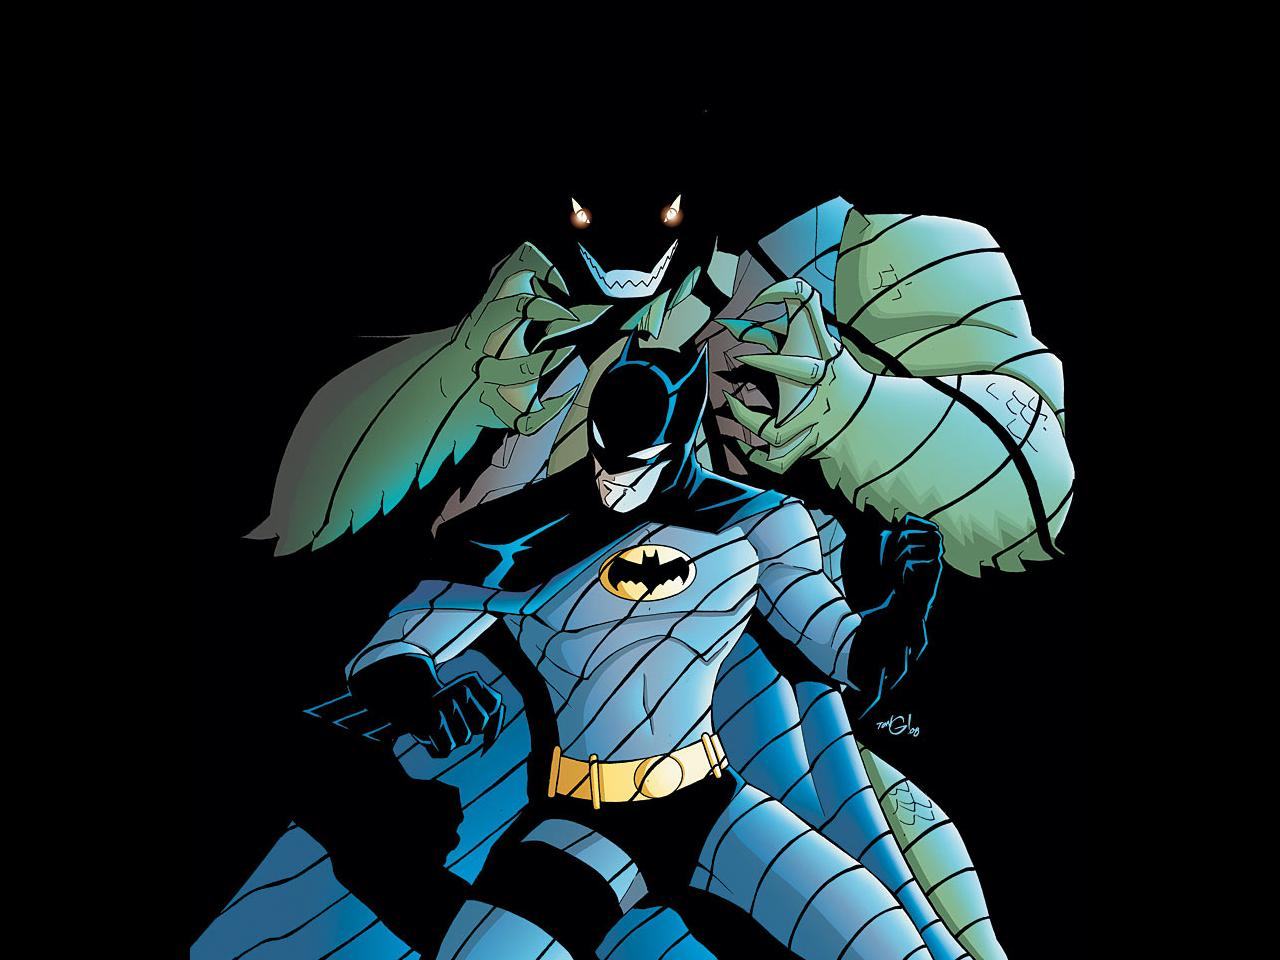 comics batman background hero - photo #17